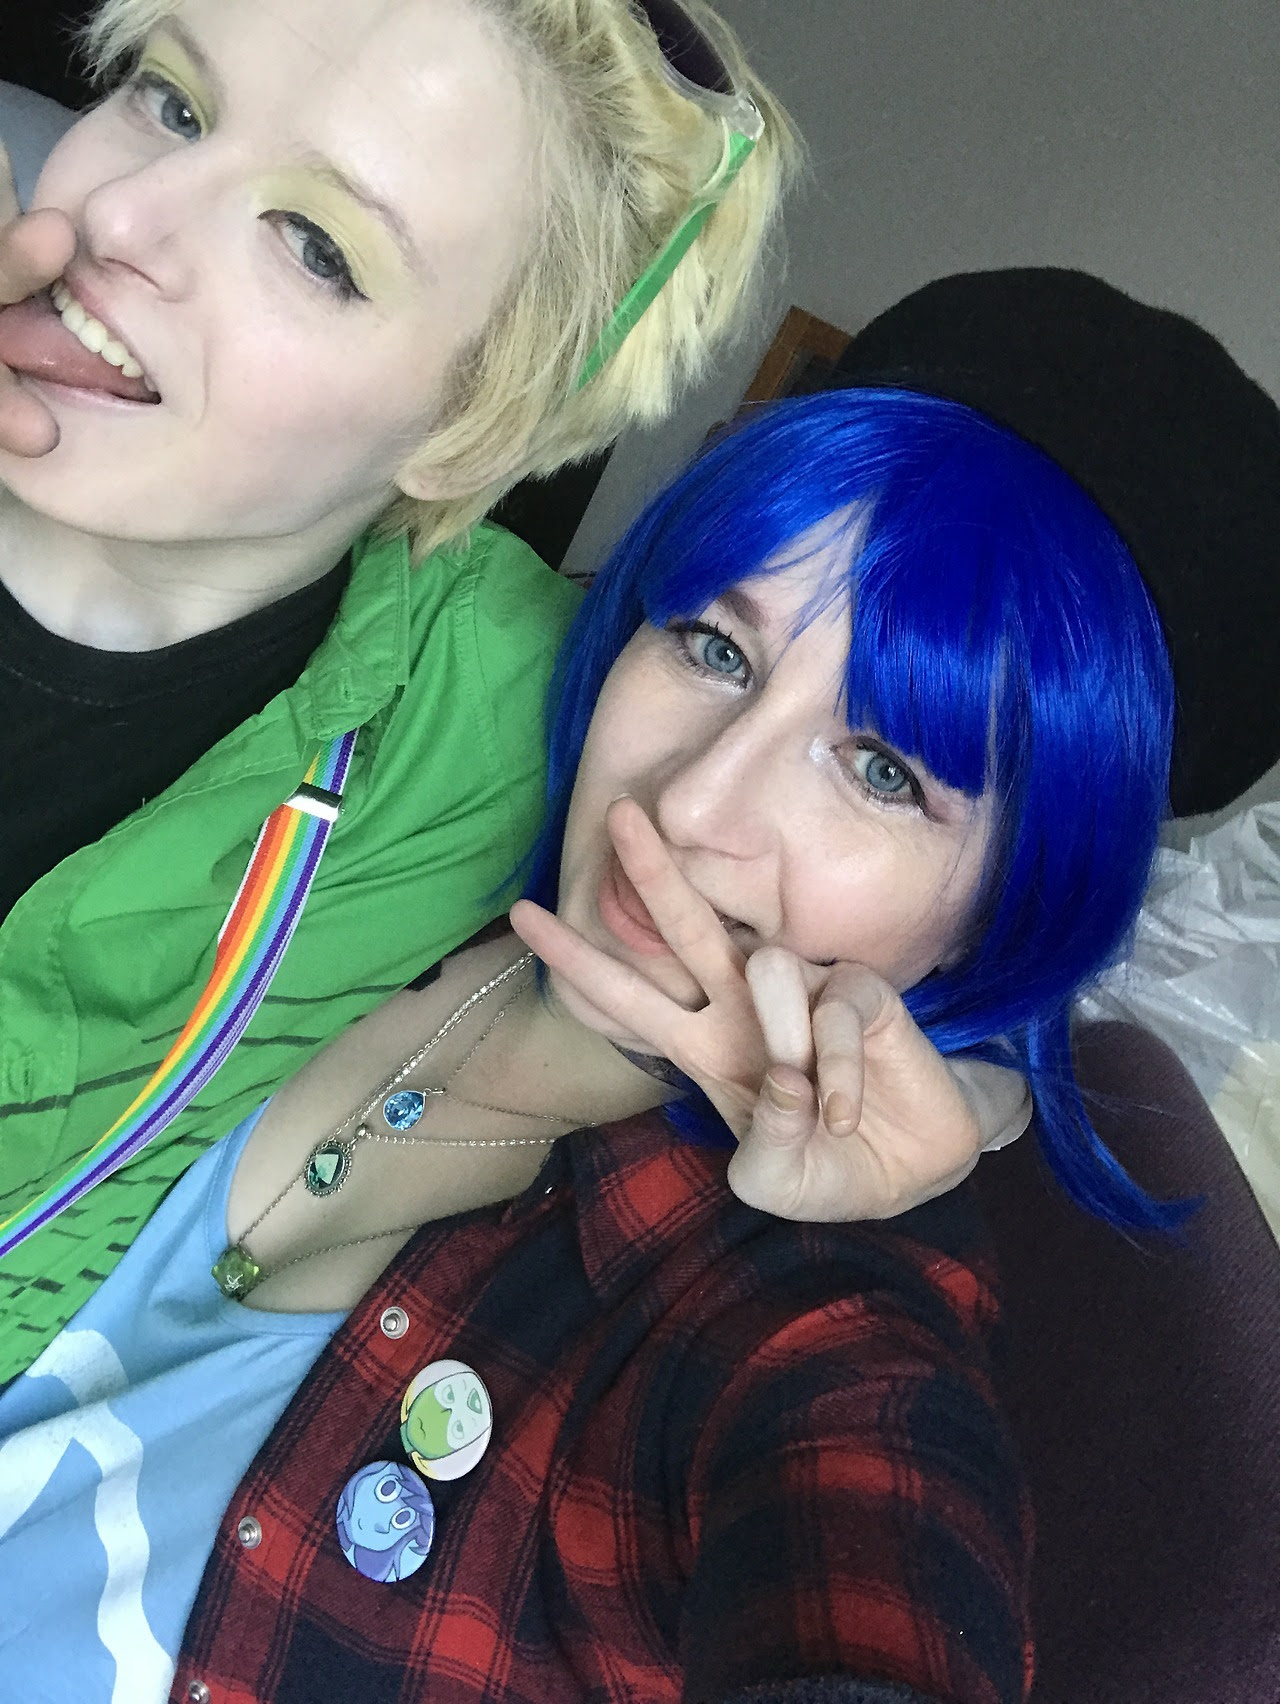 💙💚Human Lapis and Peridot on their night out!! Glow stick raving tonight ✨✨✨✨ @dement09